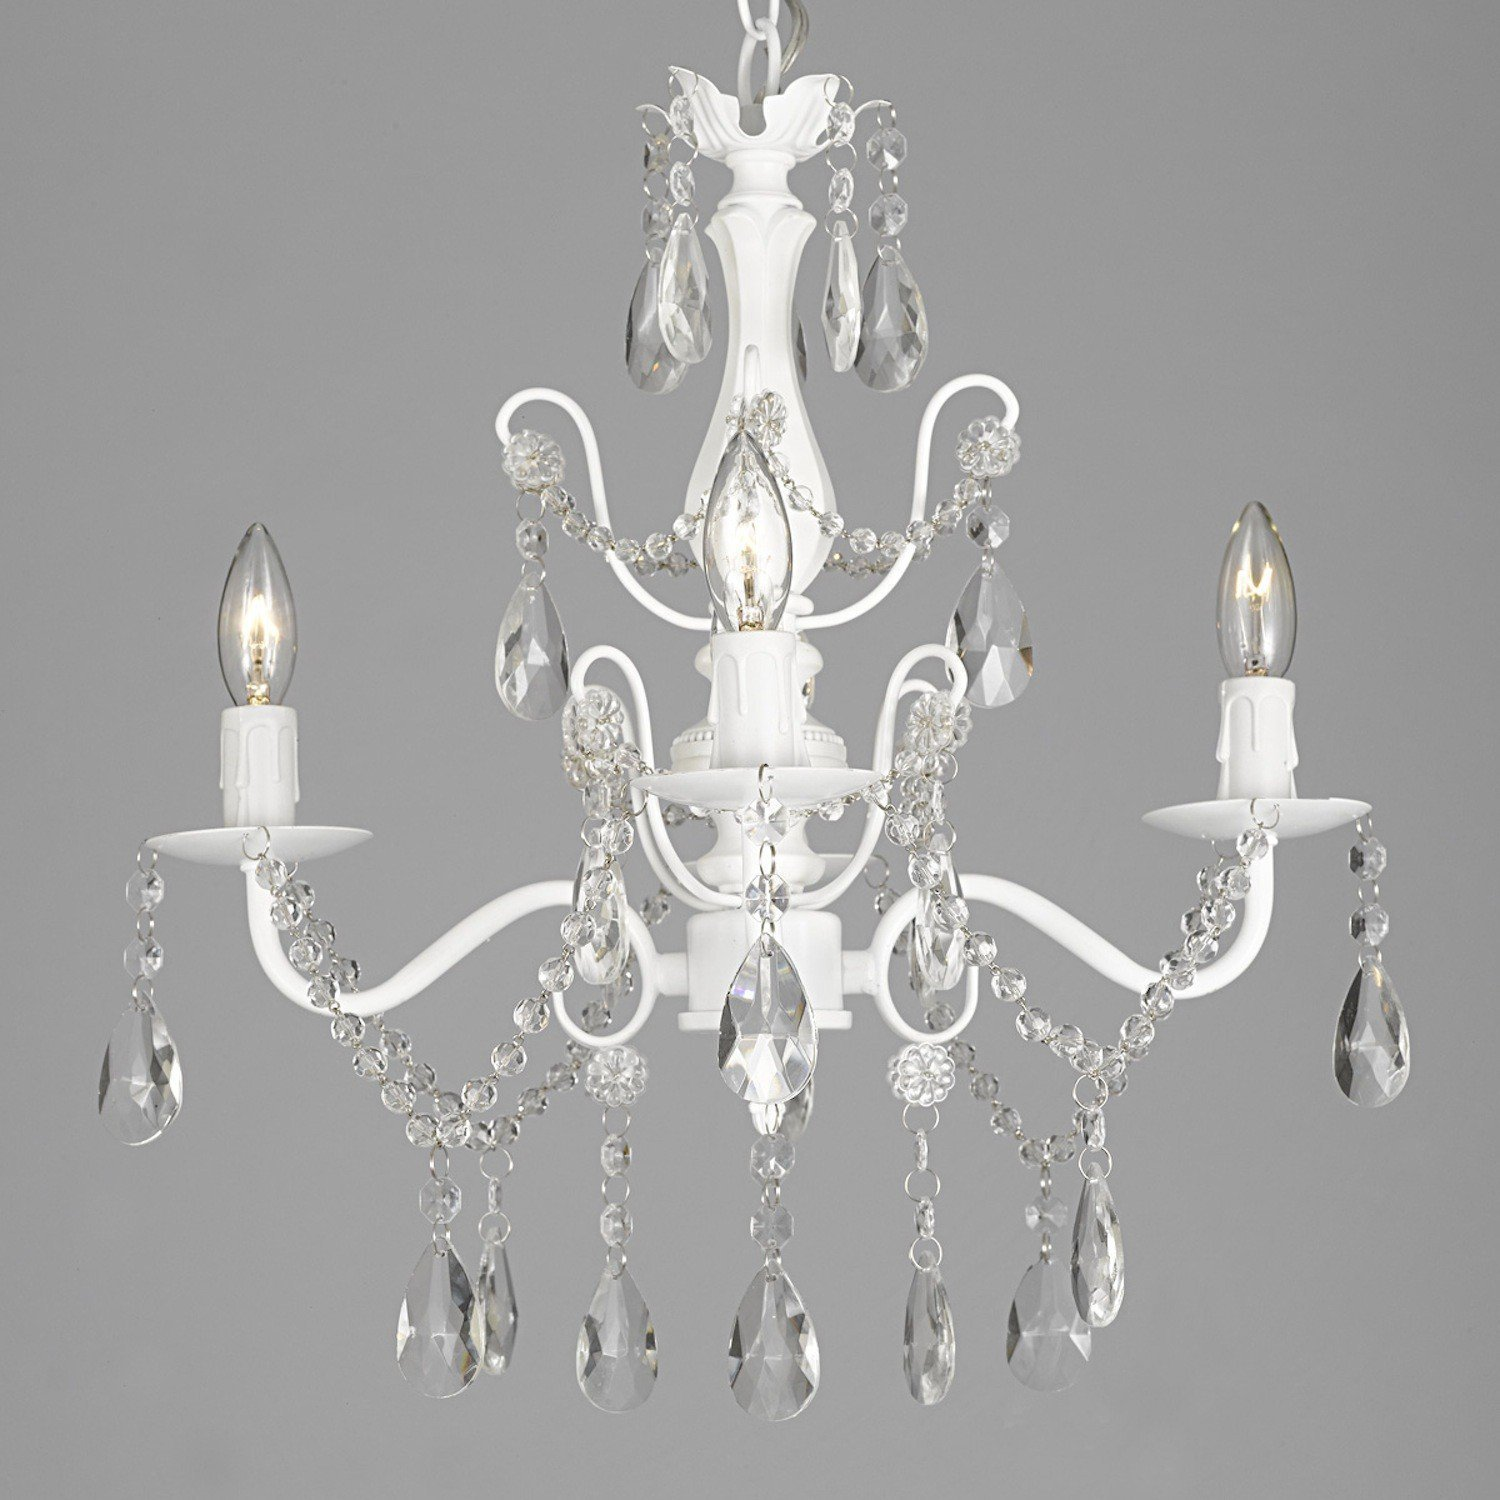 Wrought Iron and Crystal 4 Light White Chandelier